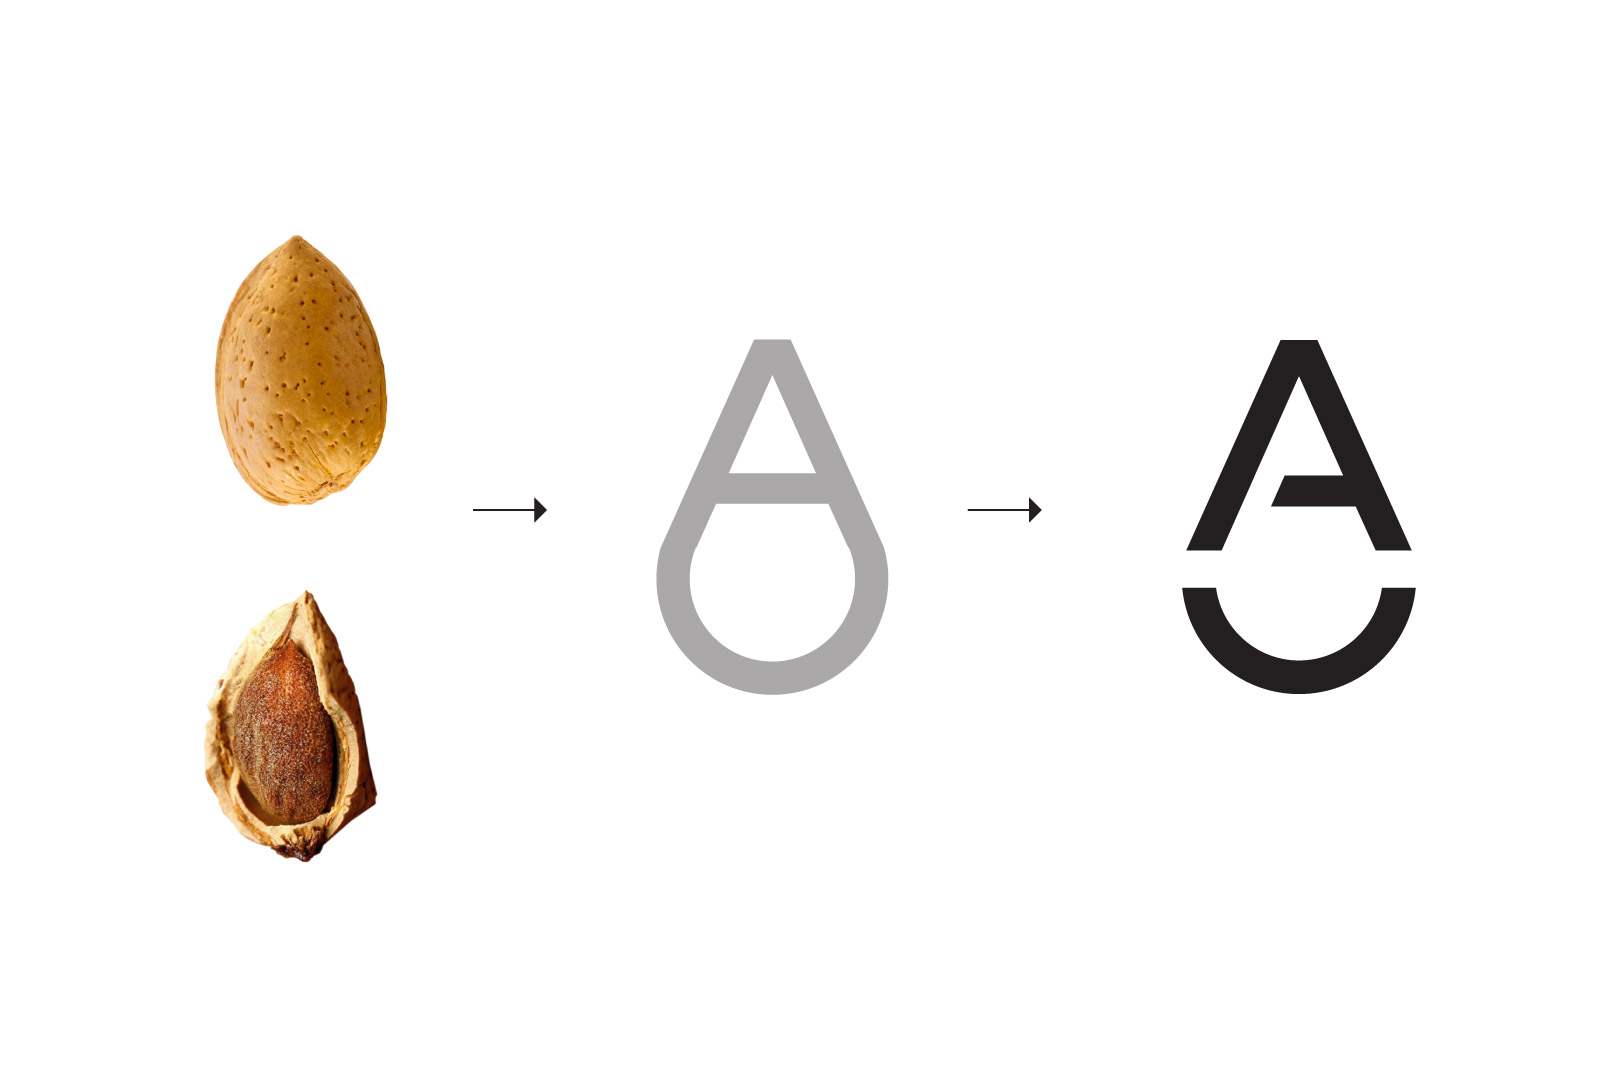 Building the almond logo